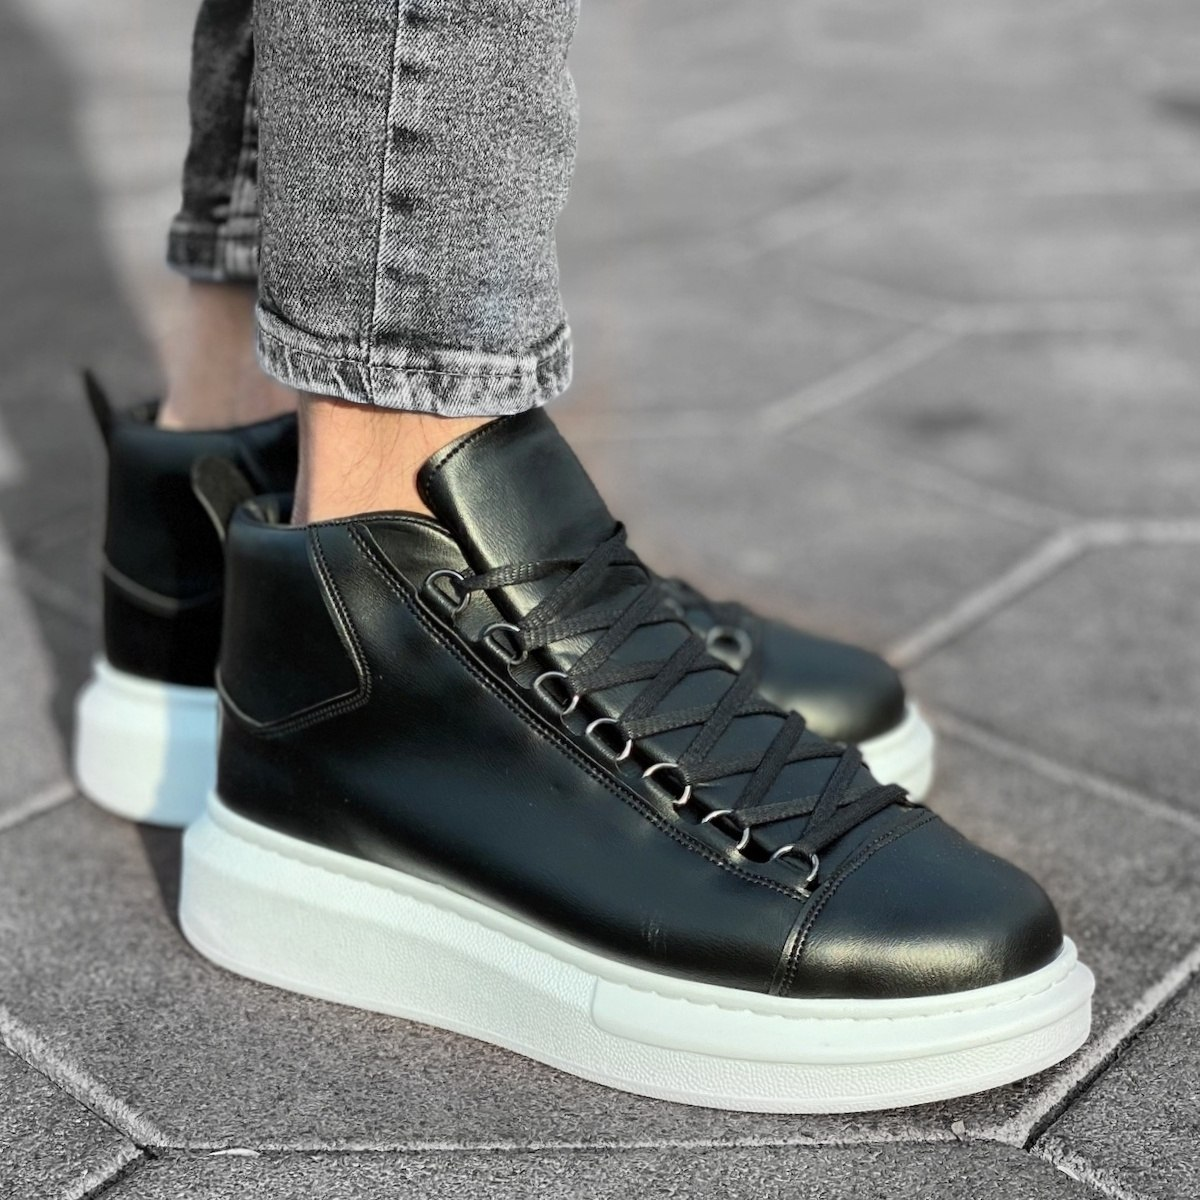 Hype Sole Mox High Top Sneakers In Black